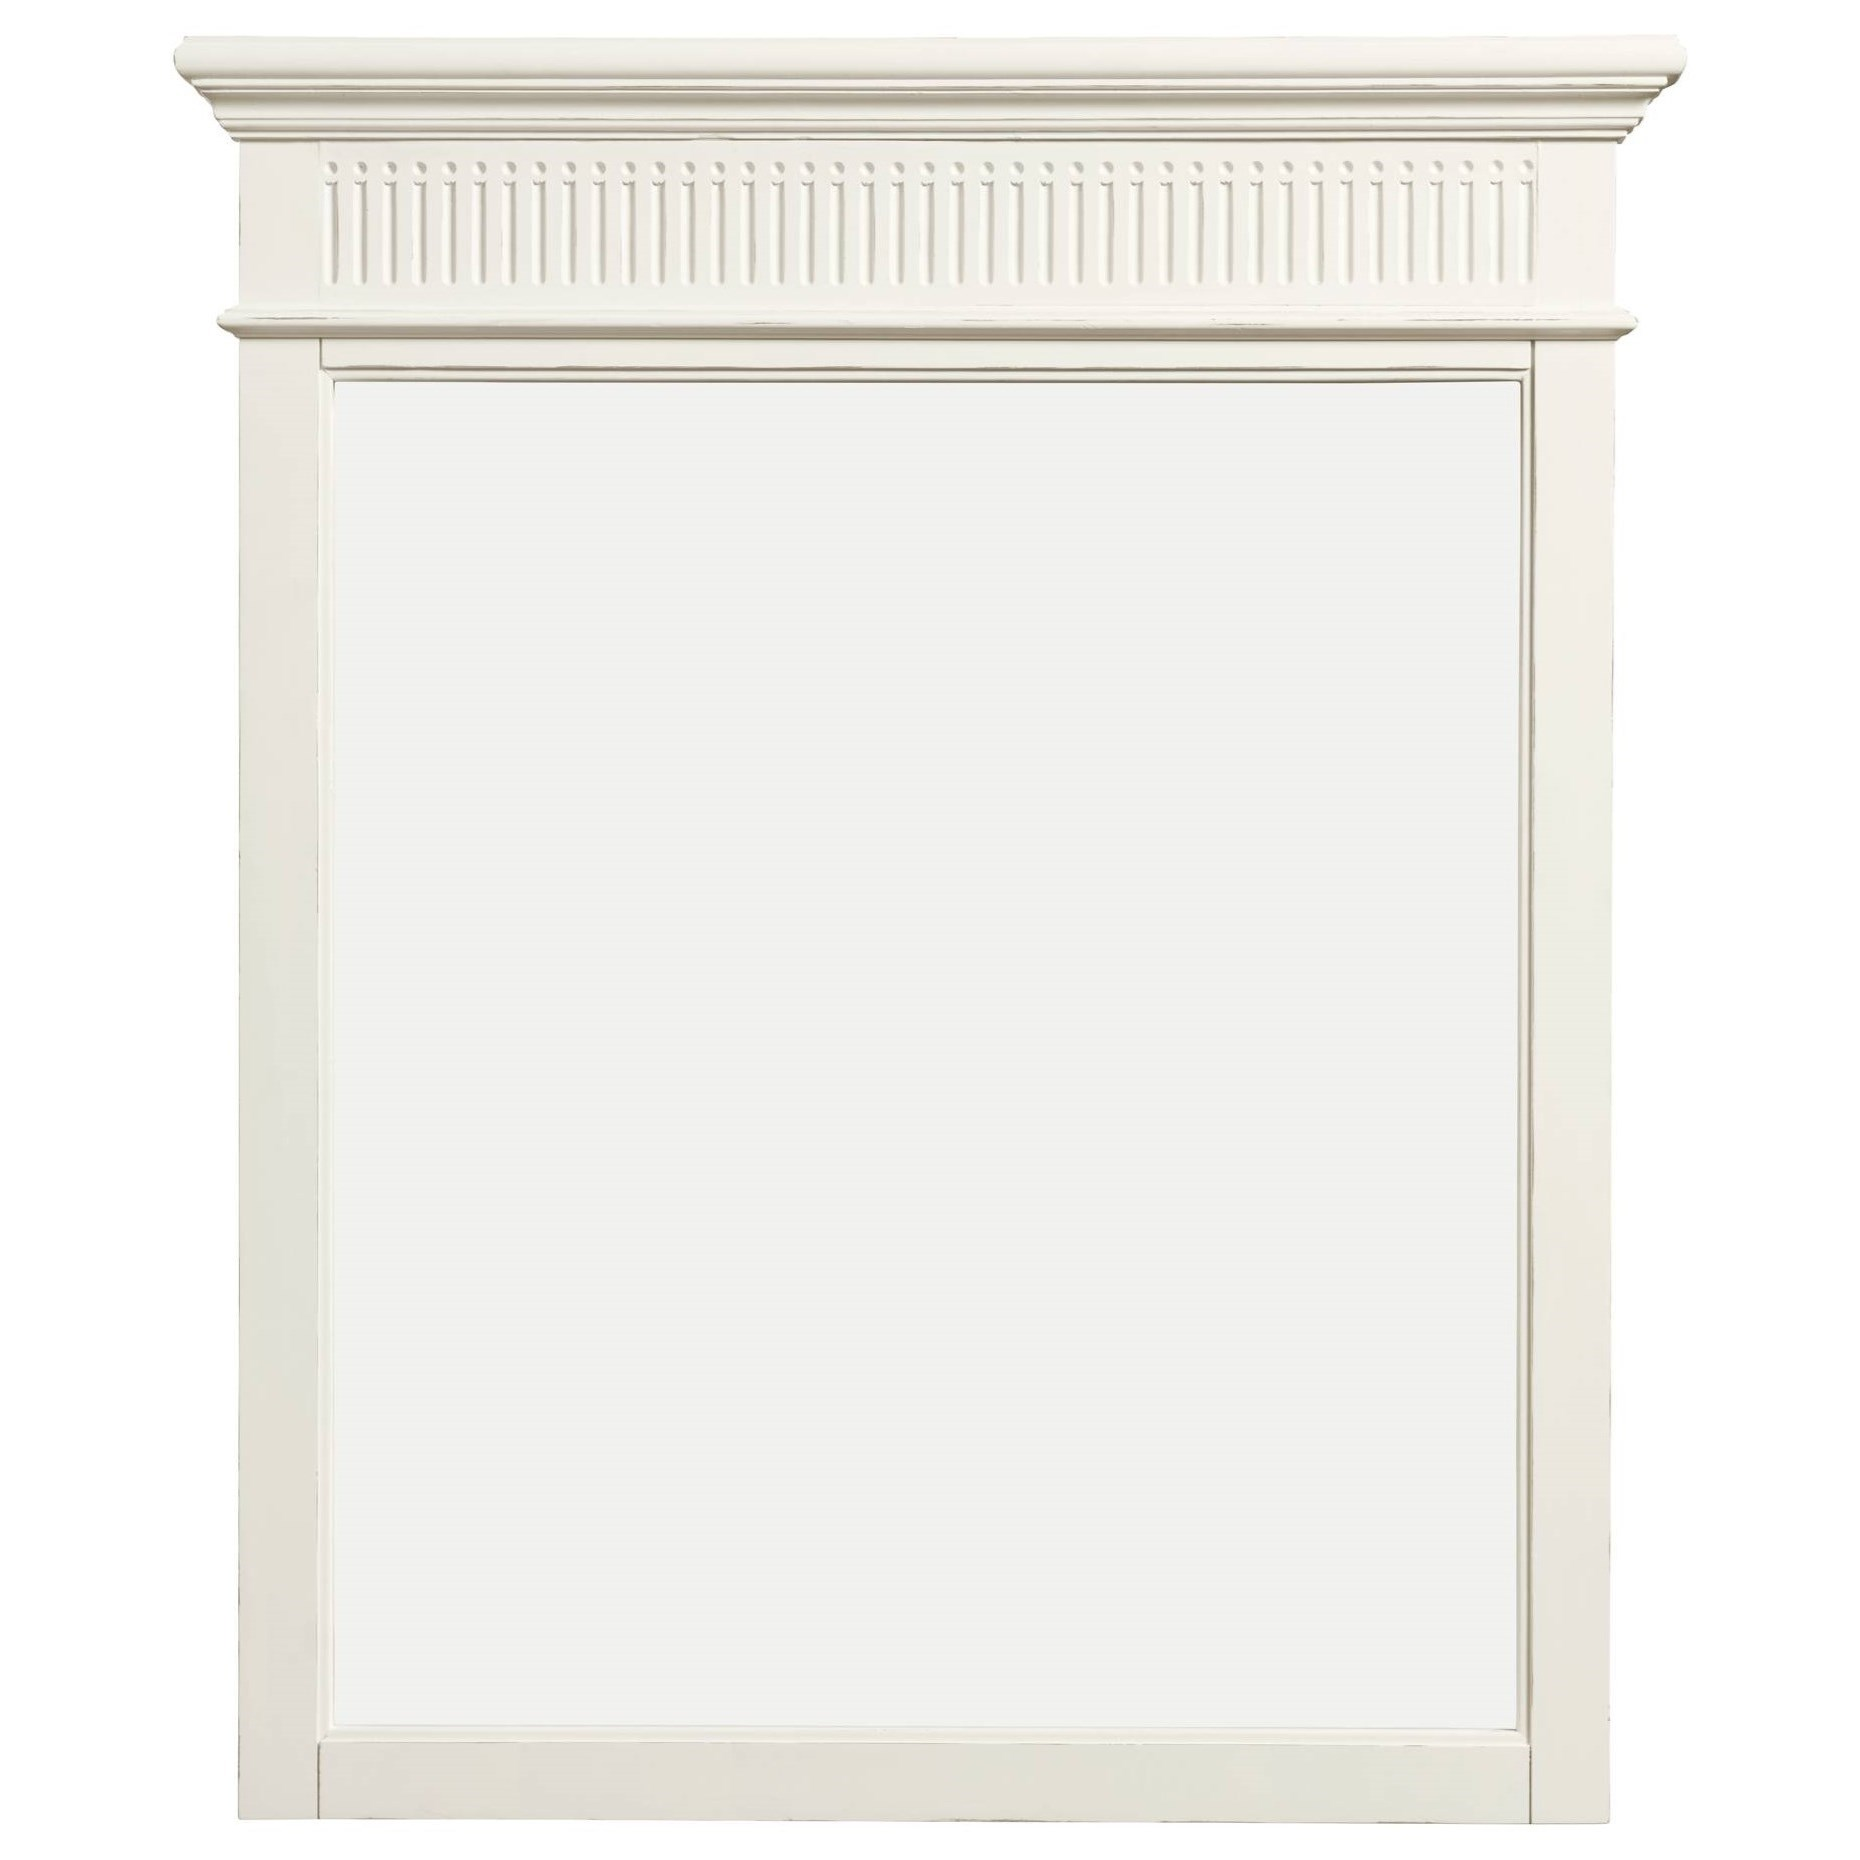 Stone & Leigh Furniture Smiling Hill Mirror - Item Number: 560-23-30